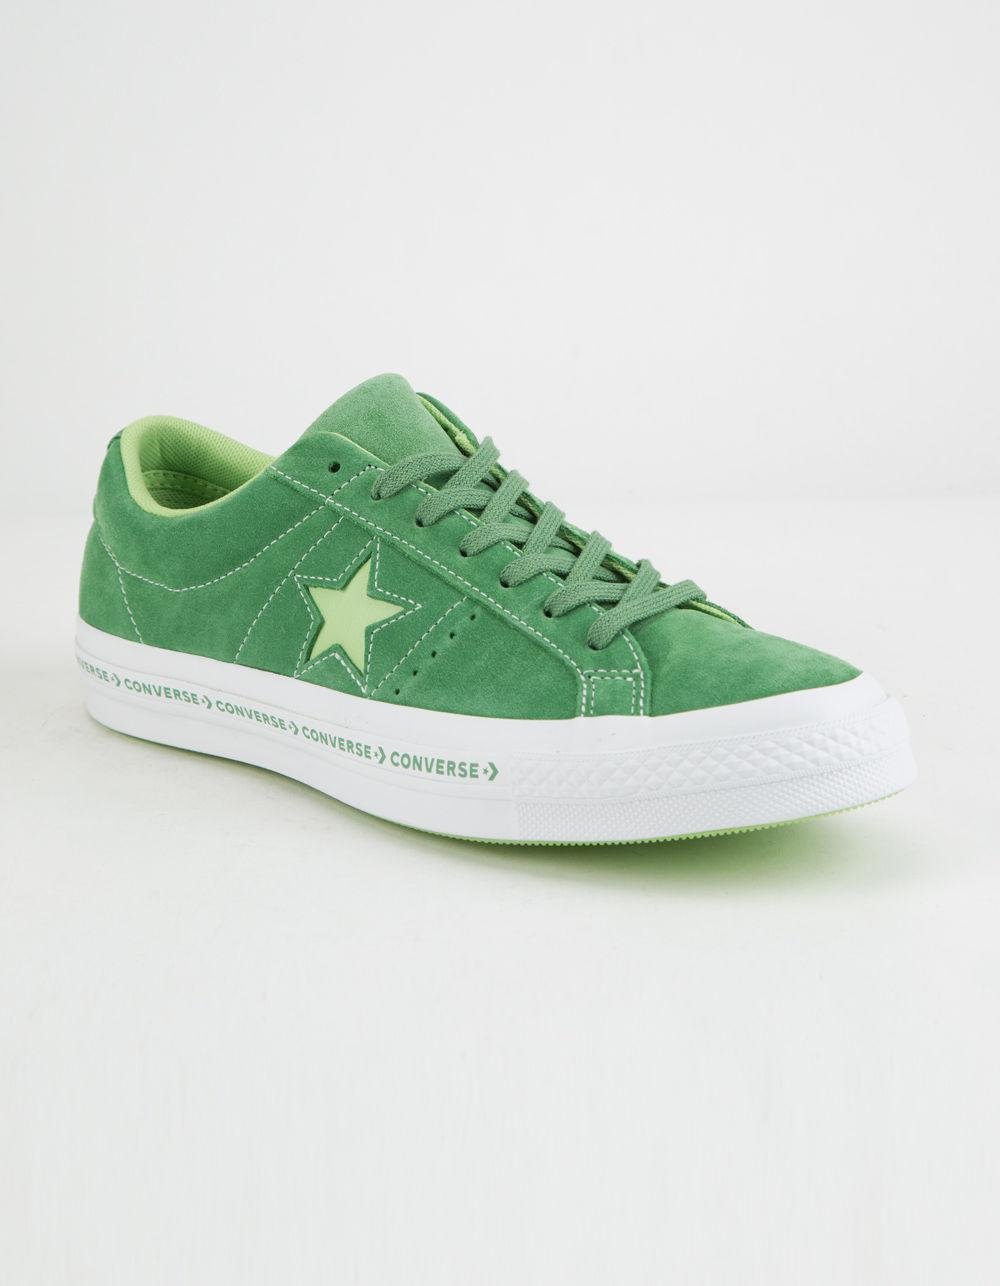 Converse ONE STAR - OX PINESTRIPE - Trainers - mint green/jade lime/white mRXTOHAg